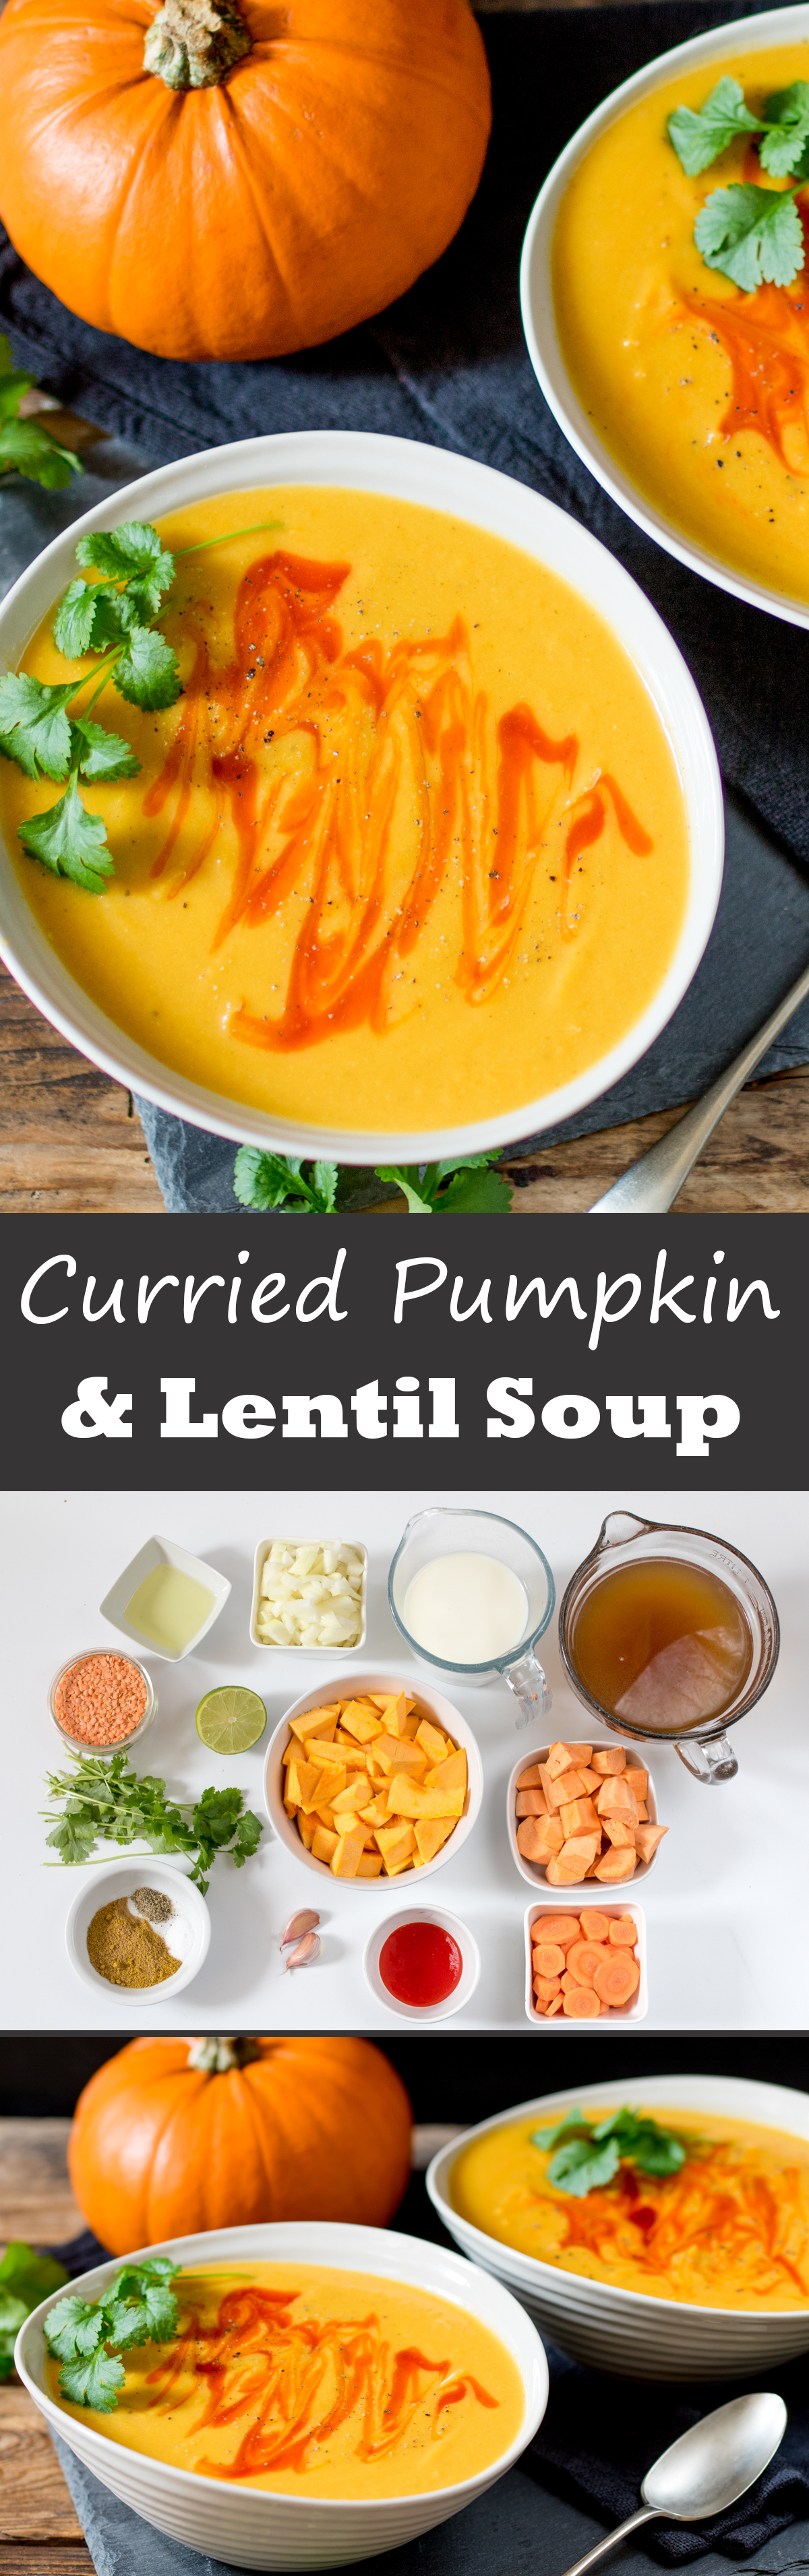 Curried pumpkin and lentil soup pinterest